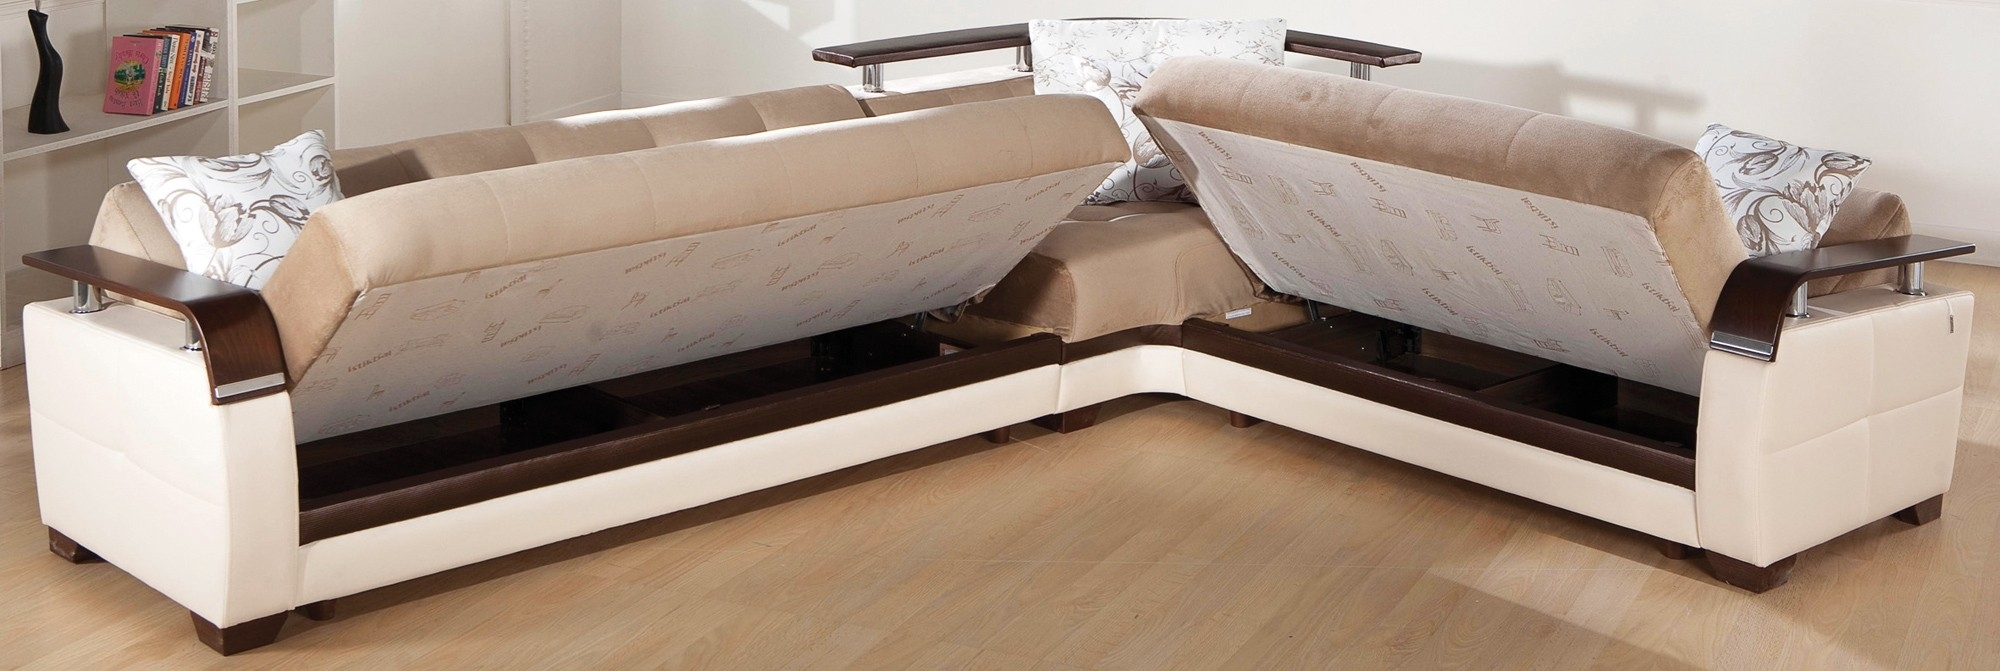 Sofa Sleeper Sectionals – Interior Design Regarding Sectional Sofas With Sleeper (Image 7 of 10)